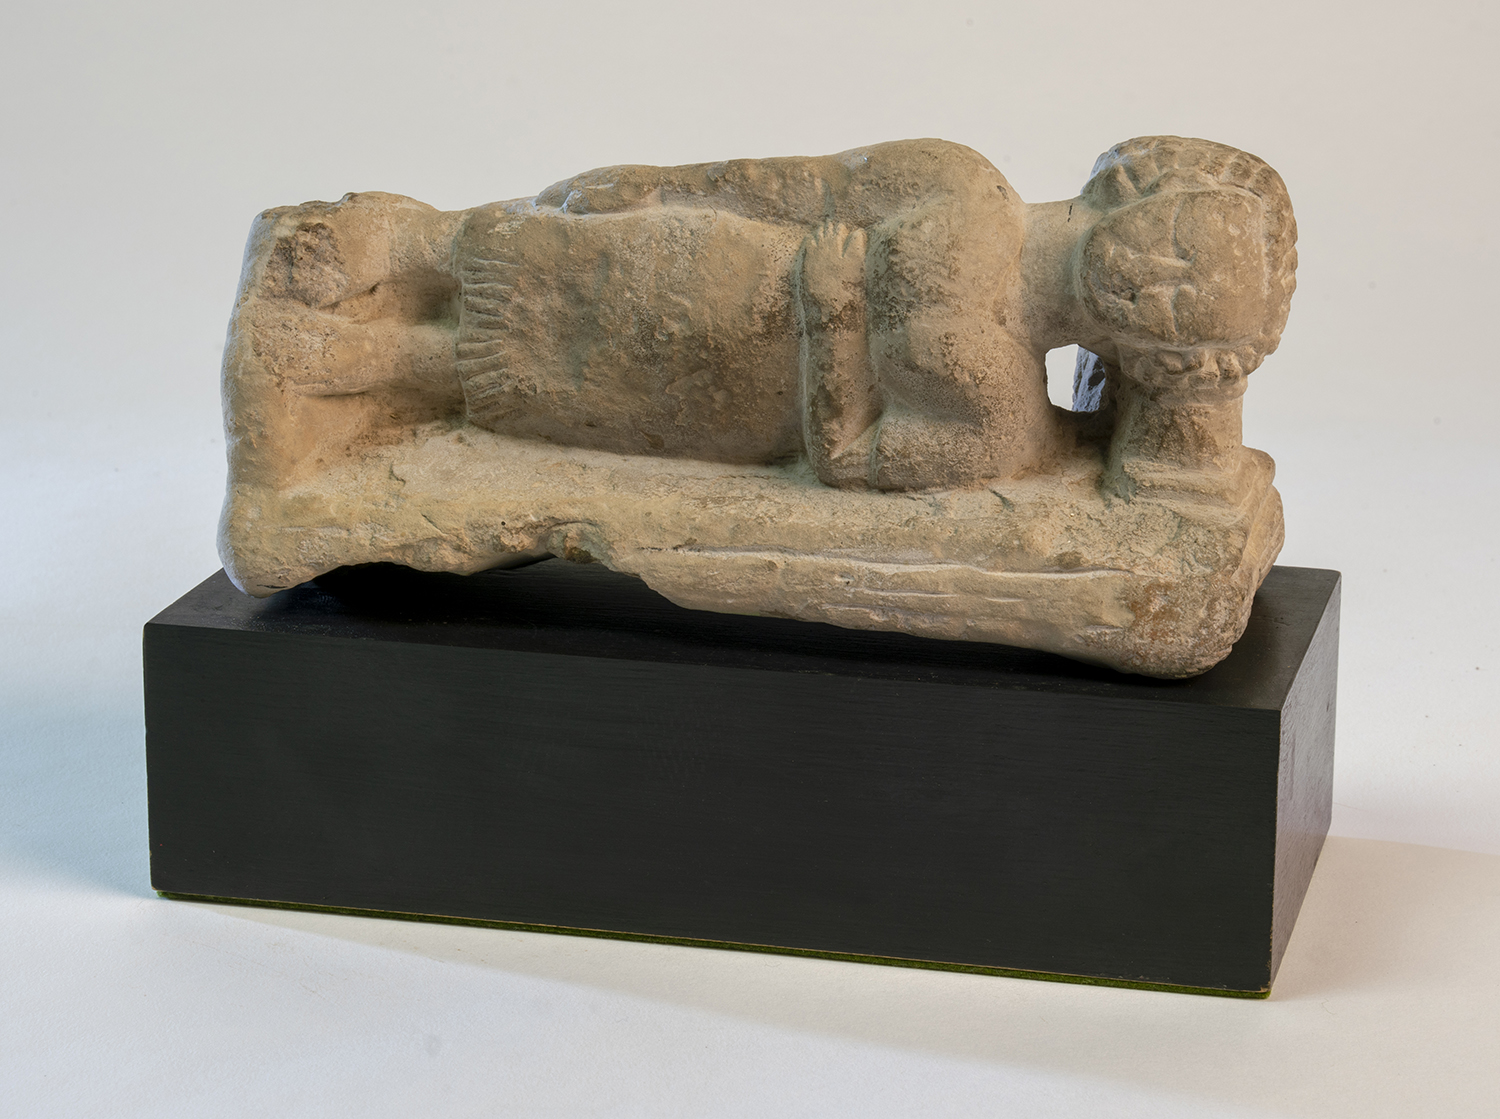 Figure 15:Limestone figure of a woman sleeping on her left side, her head supported by a headrest. In the collection of Glencairn Museum (E1219).